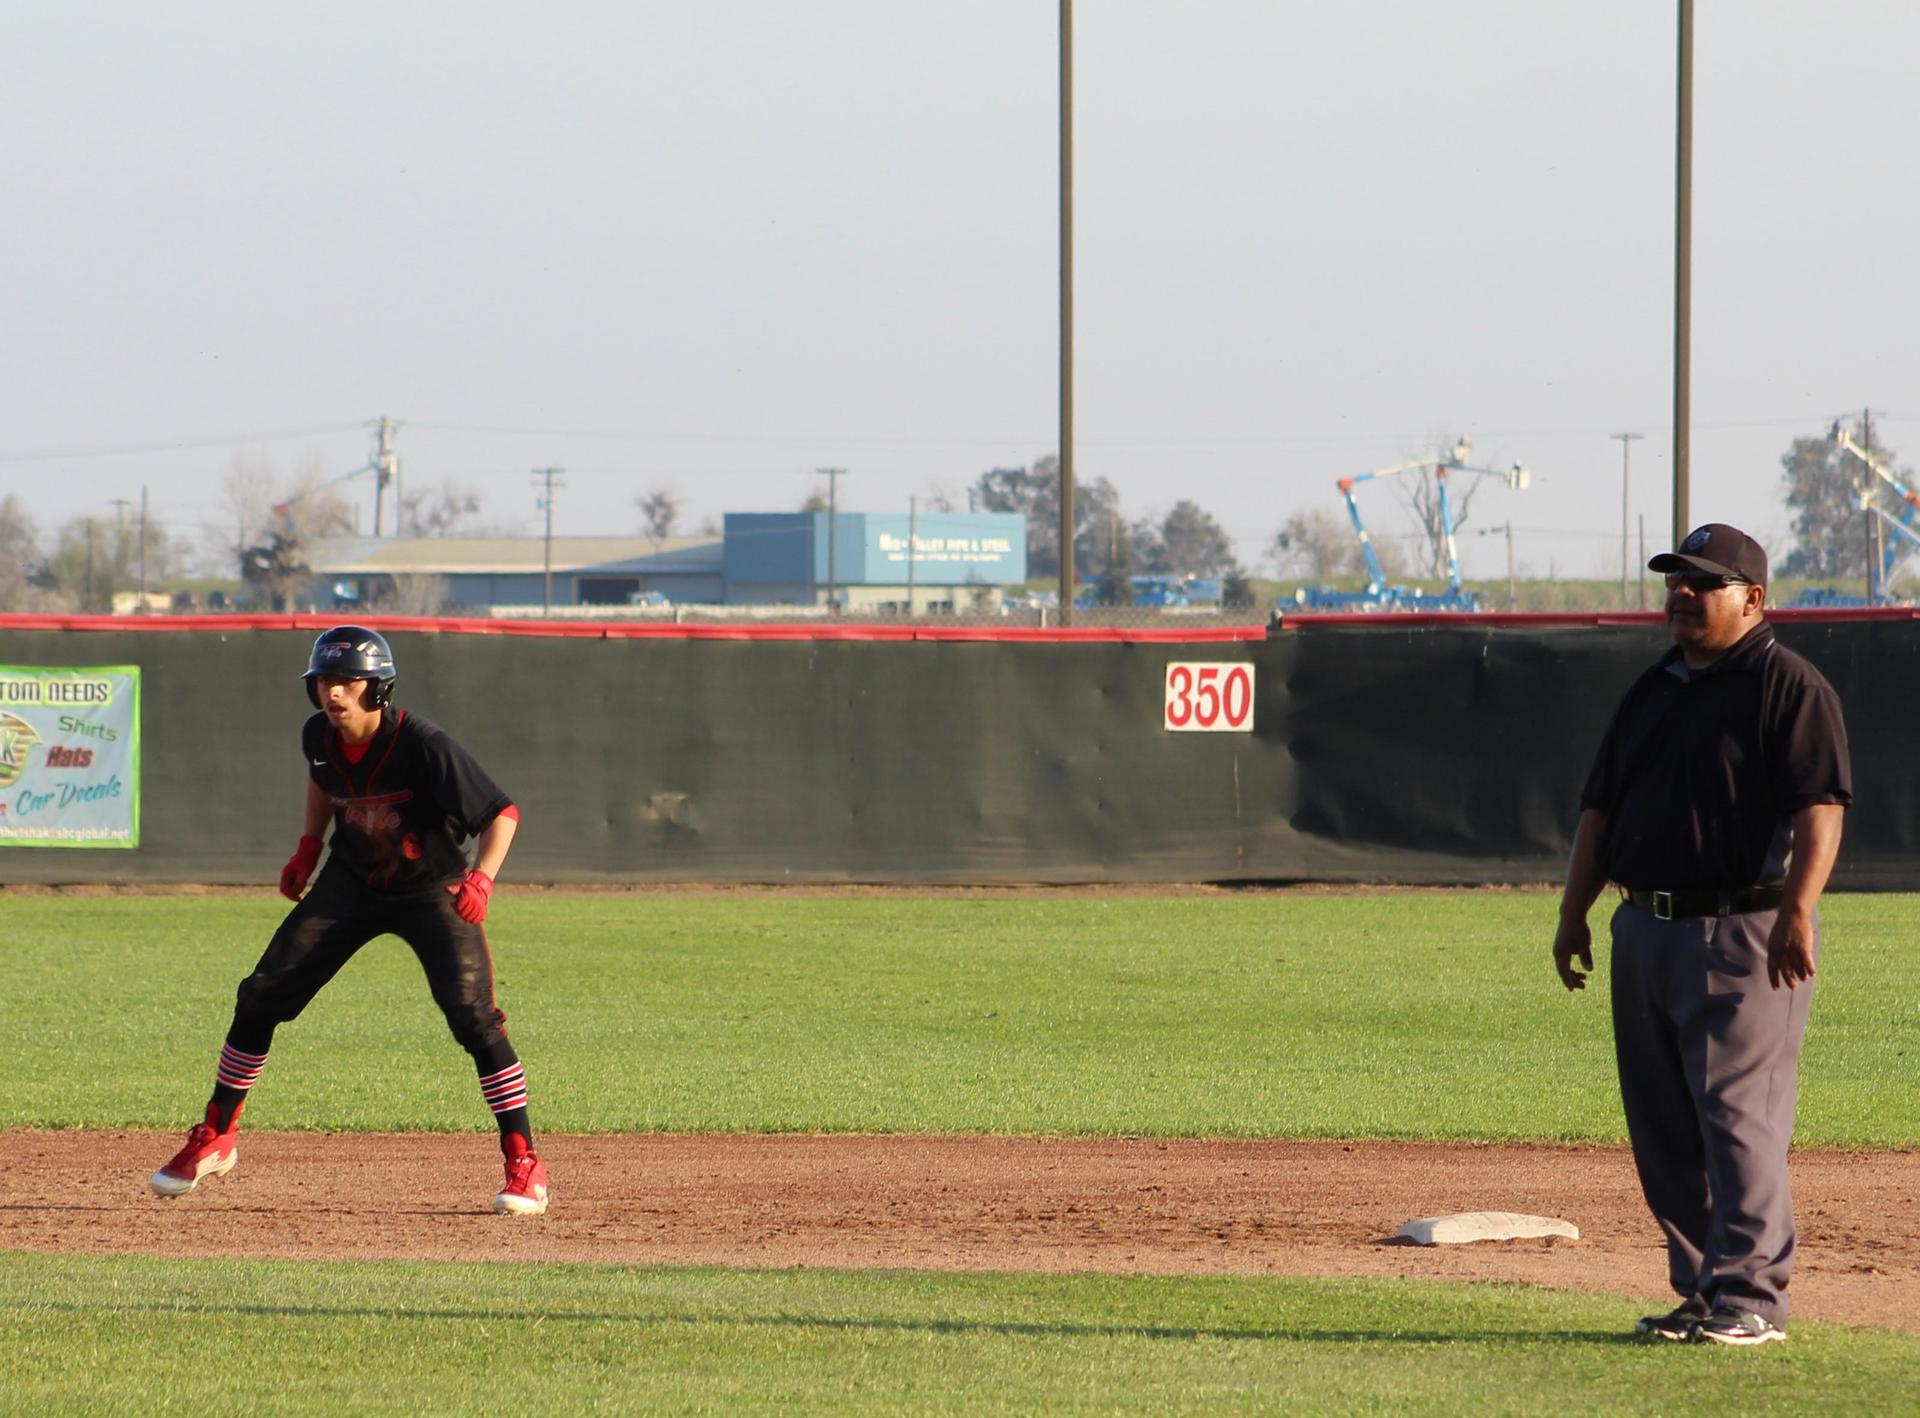 varsity baseball players in action against Sierra Pacific